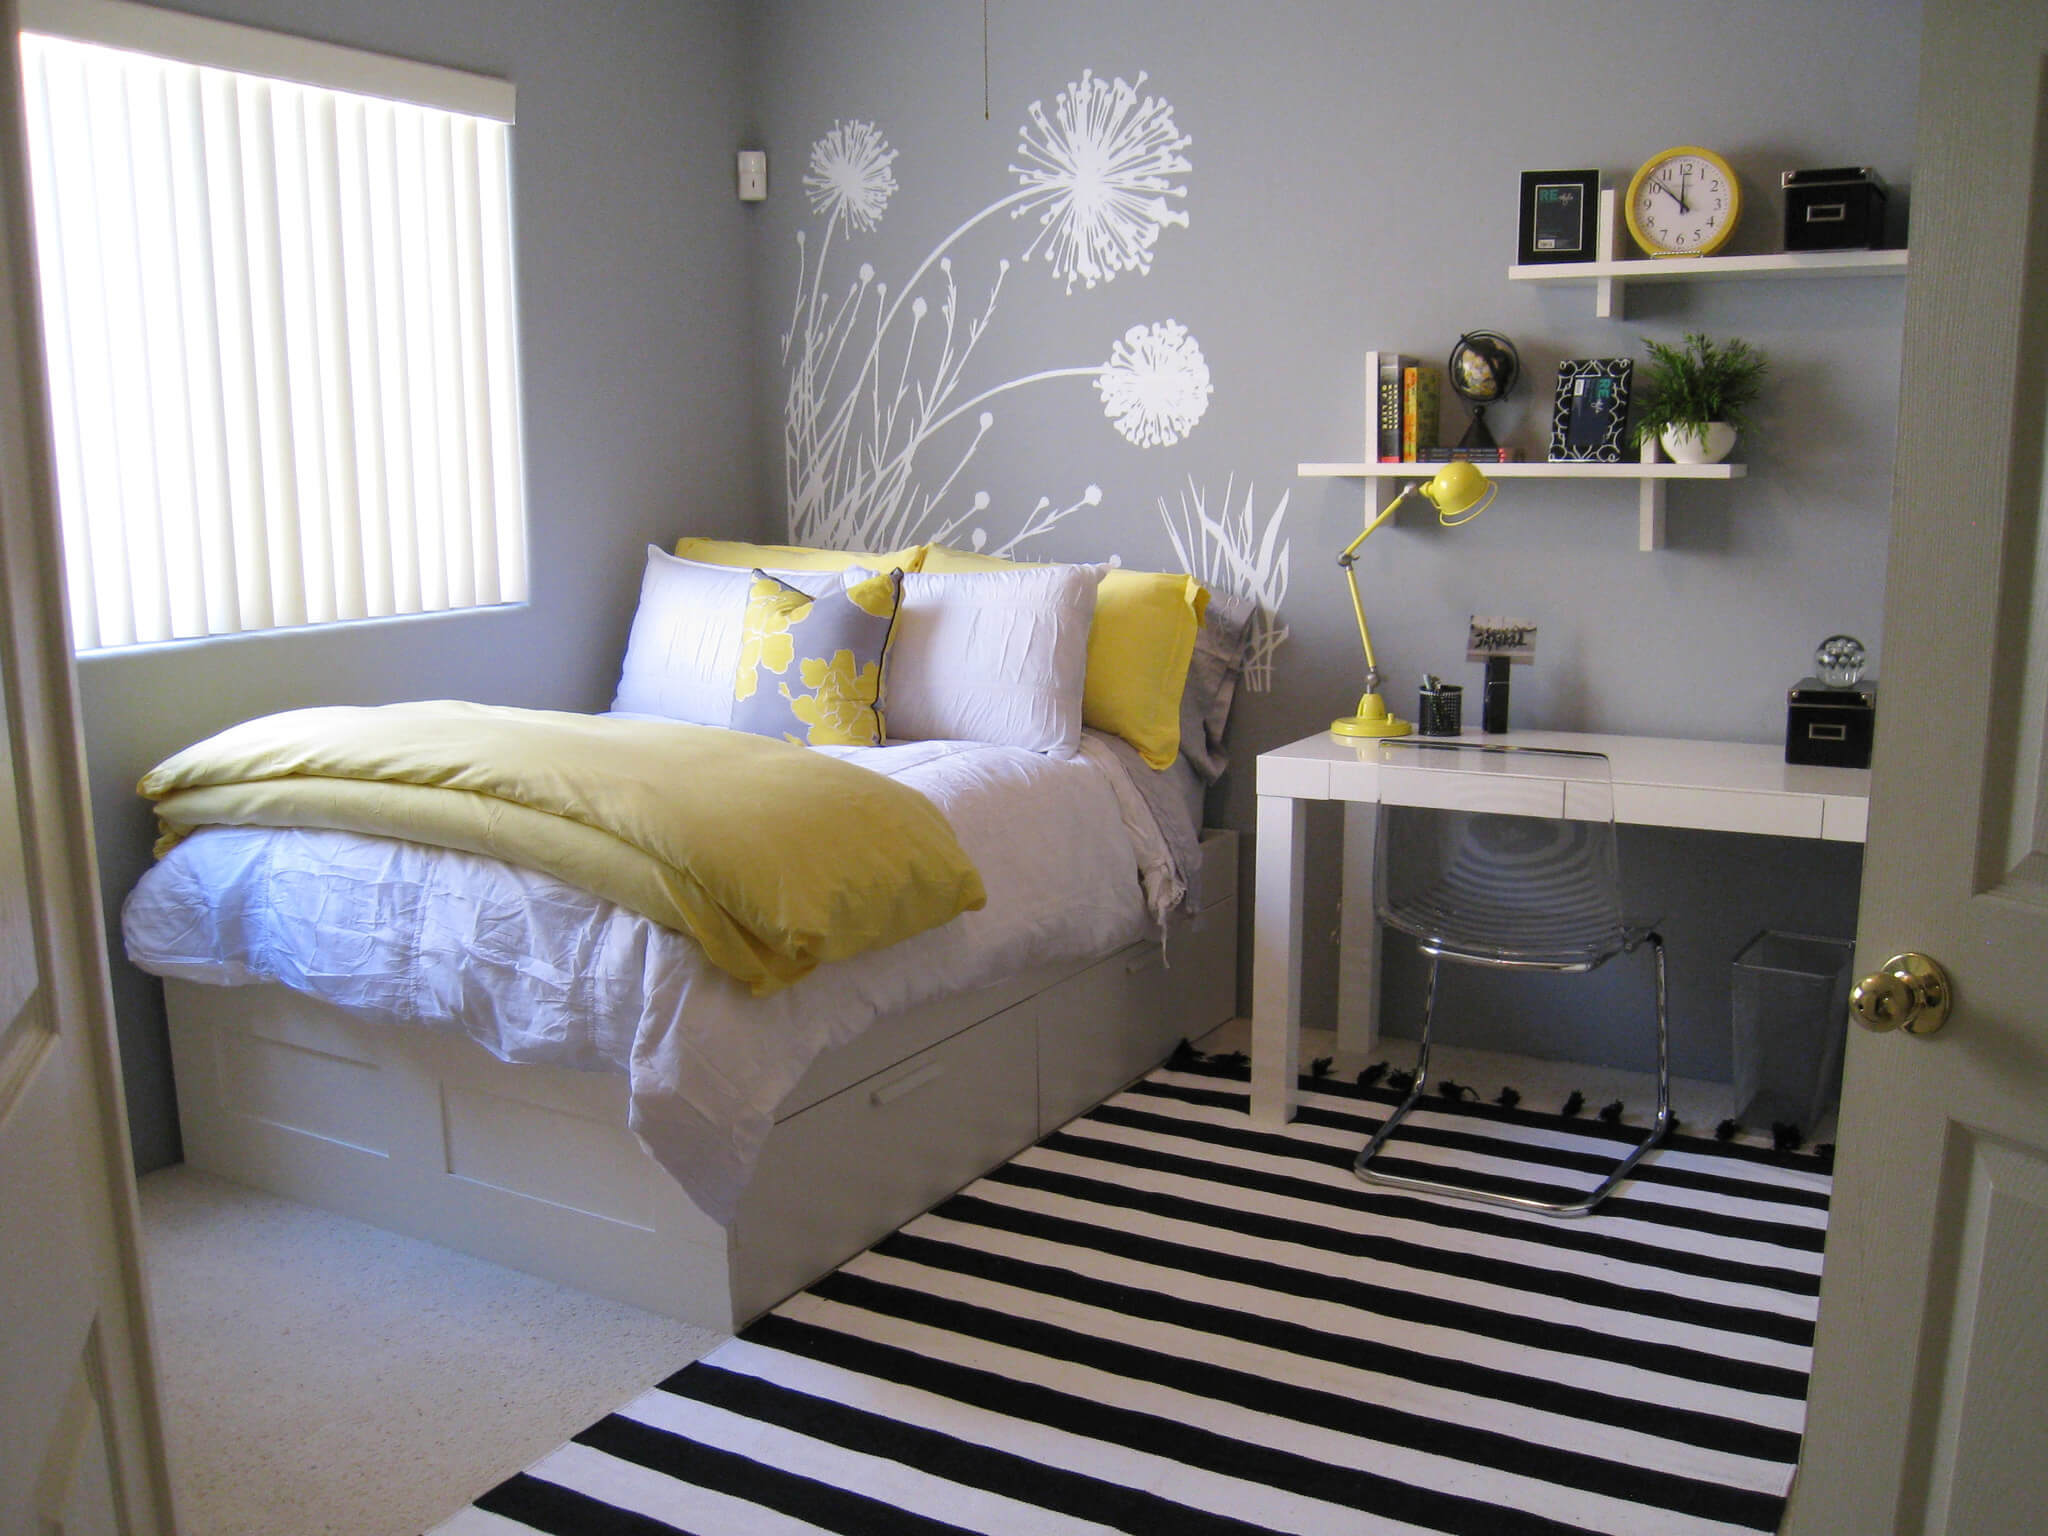 10 ways to make your small room look bigger hostel hunting owners d12050be14328d18f5719d4ed65e62c5